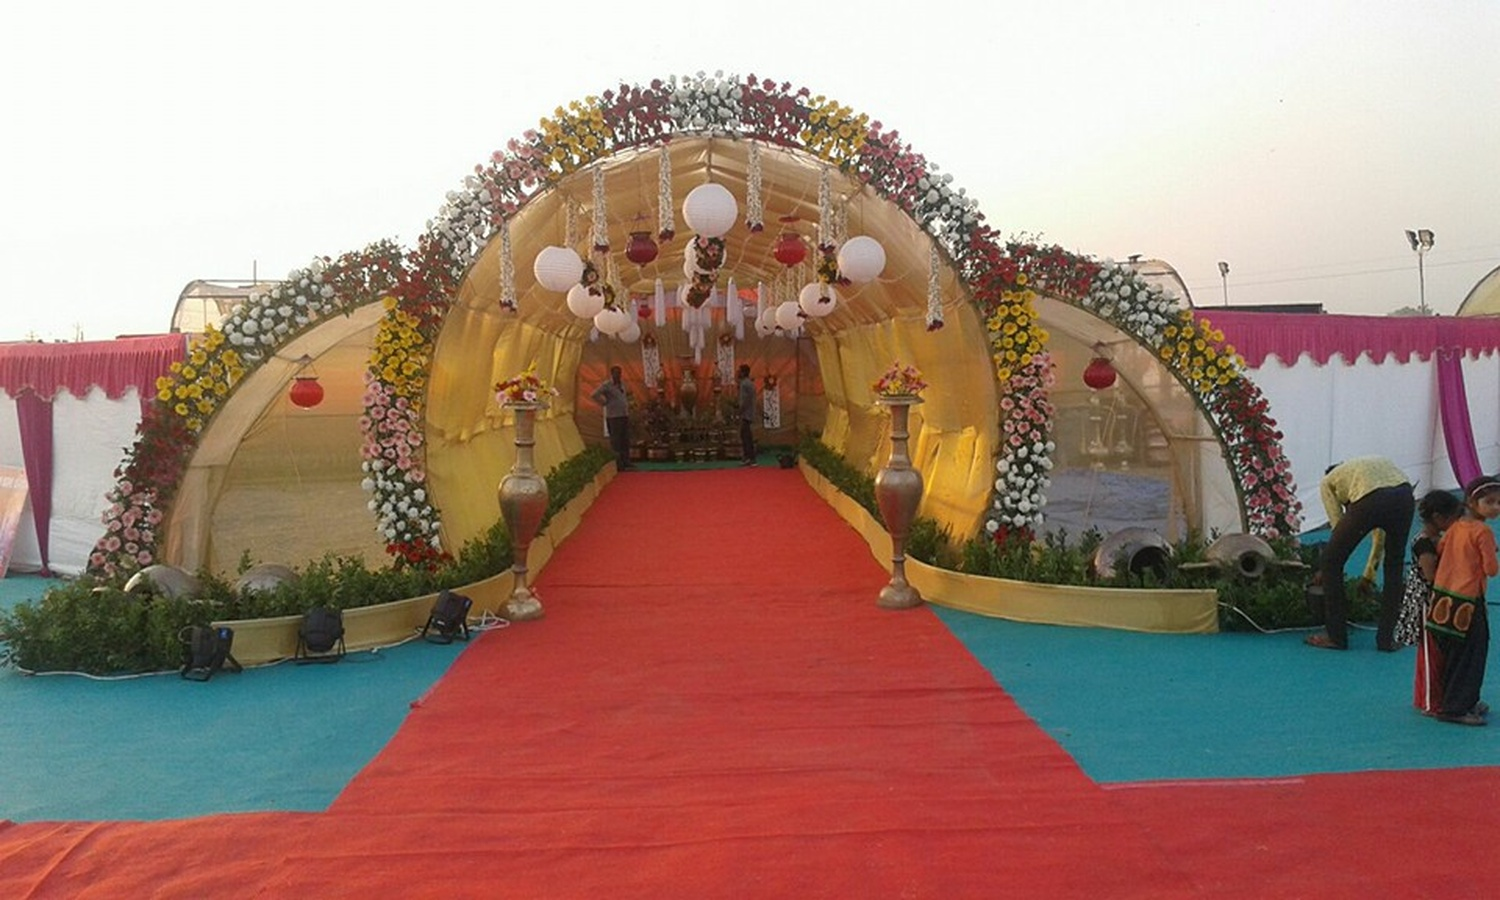 Ibs decorators wedding decorator in maninagar ahmedabad weddingz overview junglespirit